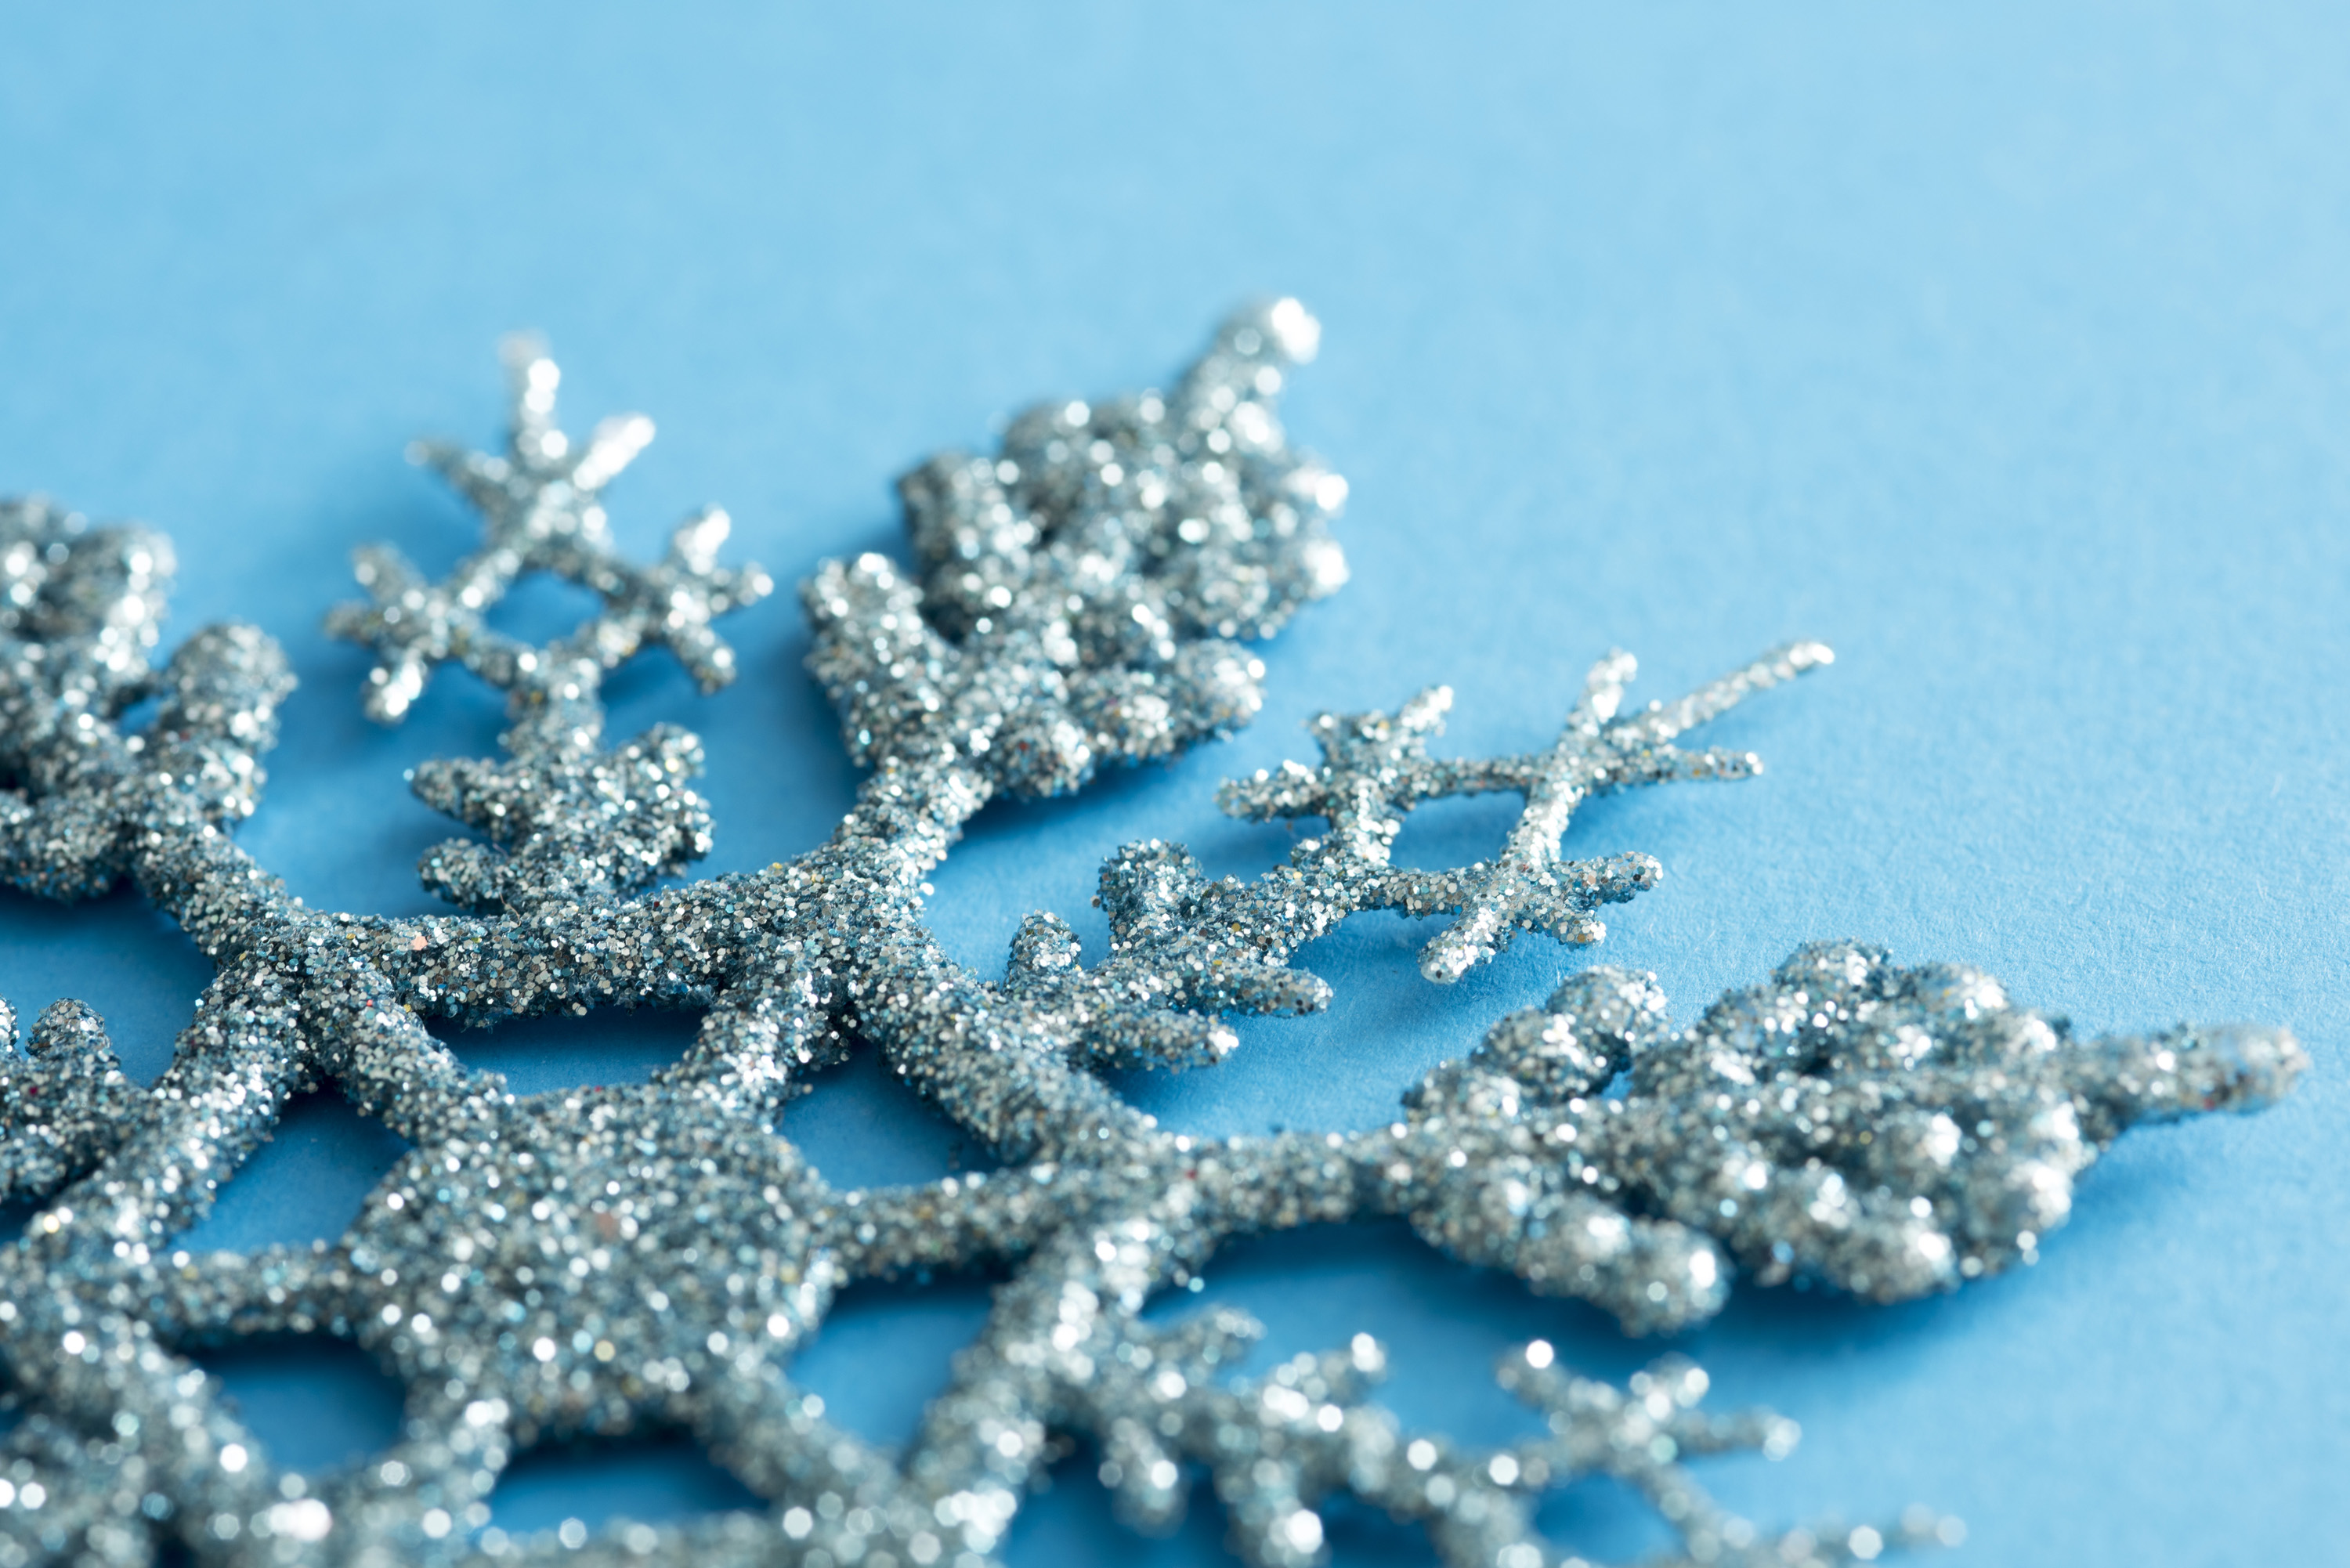 Glitter texture on a blue snowflake Christmas decoration in a close up oblique view on a matching cool blue winter background with copy space